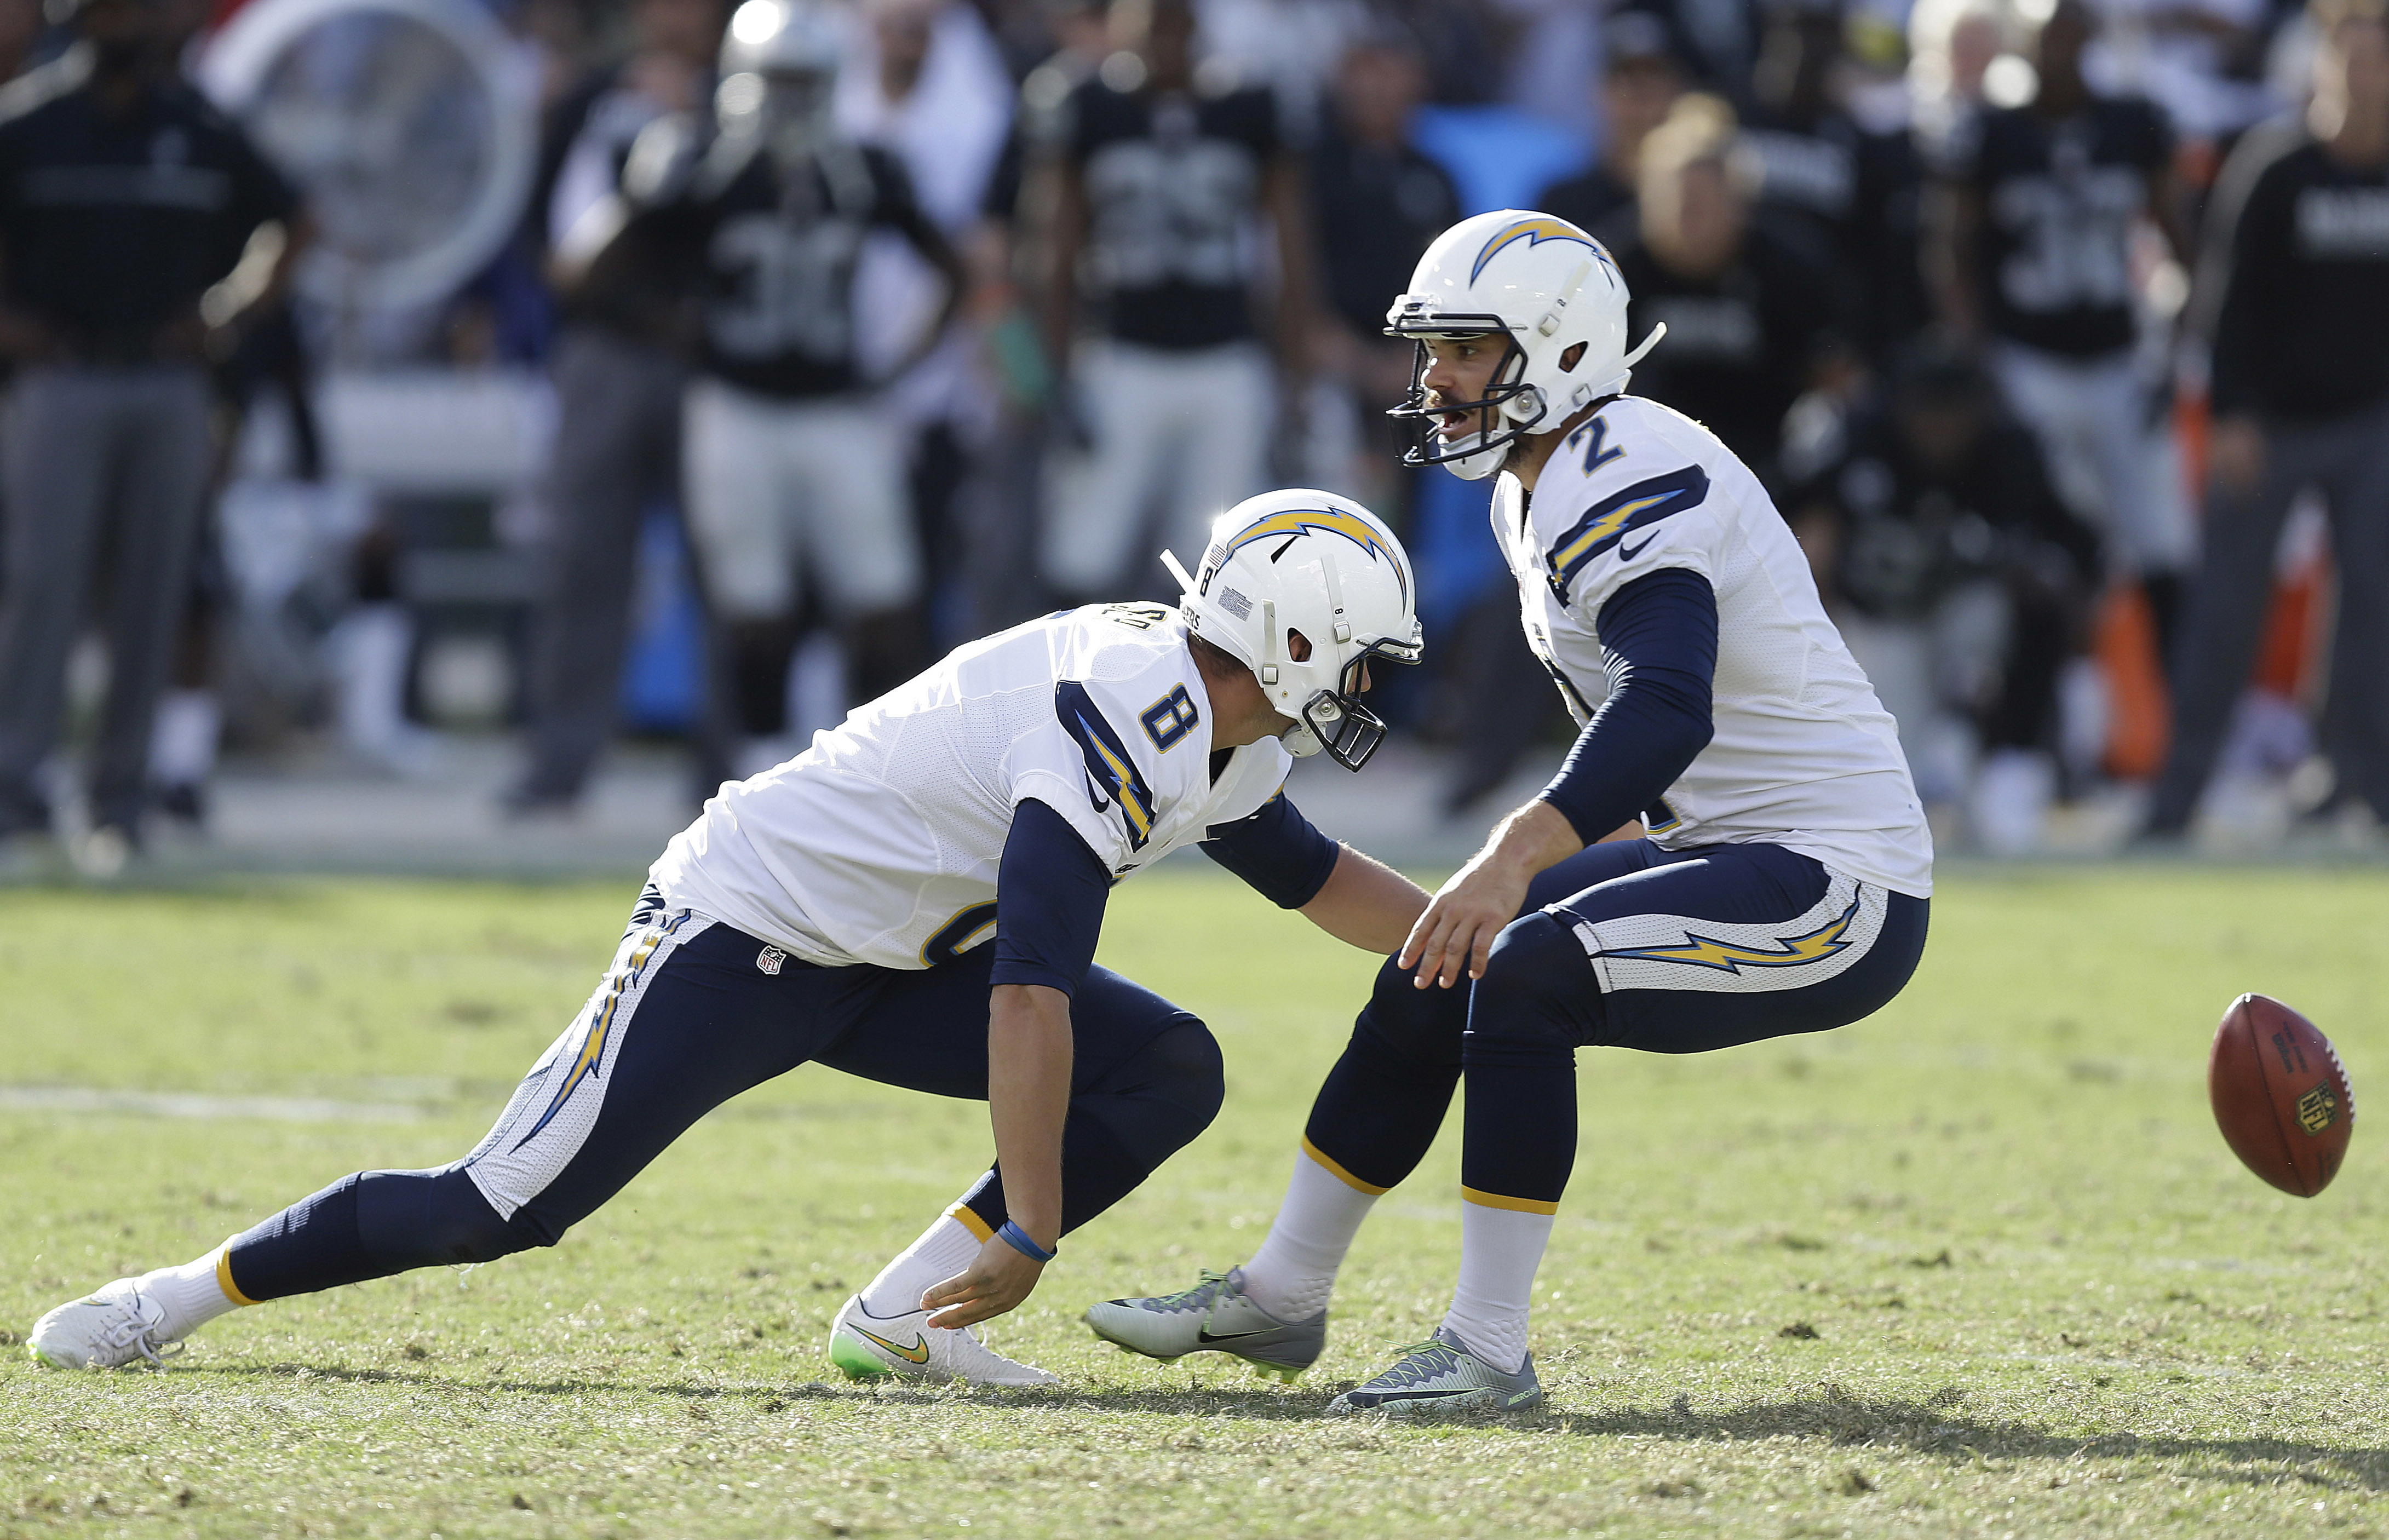 San Diego Chargers punter Drew Kaser, left, tries to retrieve the ball on a field goal attempt next to kicker Josh Lambo (2) during the second half of an NFL football game against the Oakland Raiders in Oakland, Calif., Sunday, Oct. 9, 2016. (AP Photo/Ben